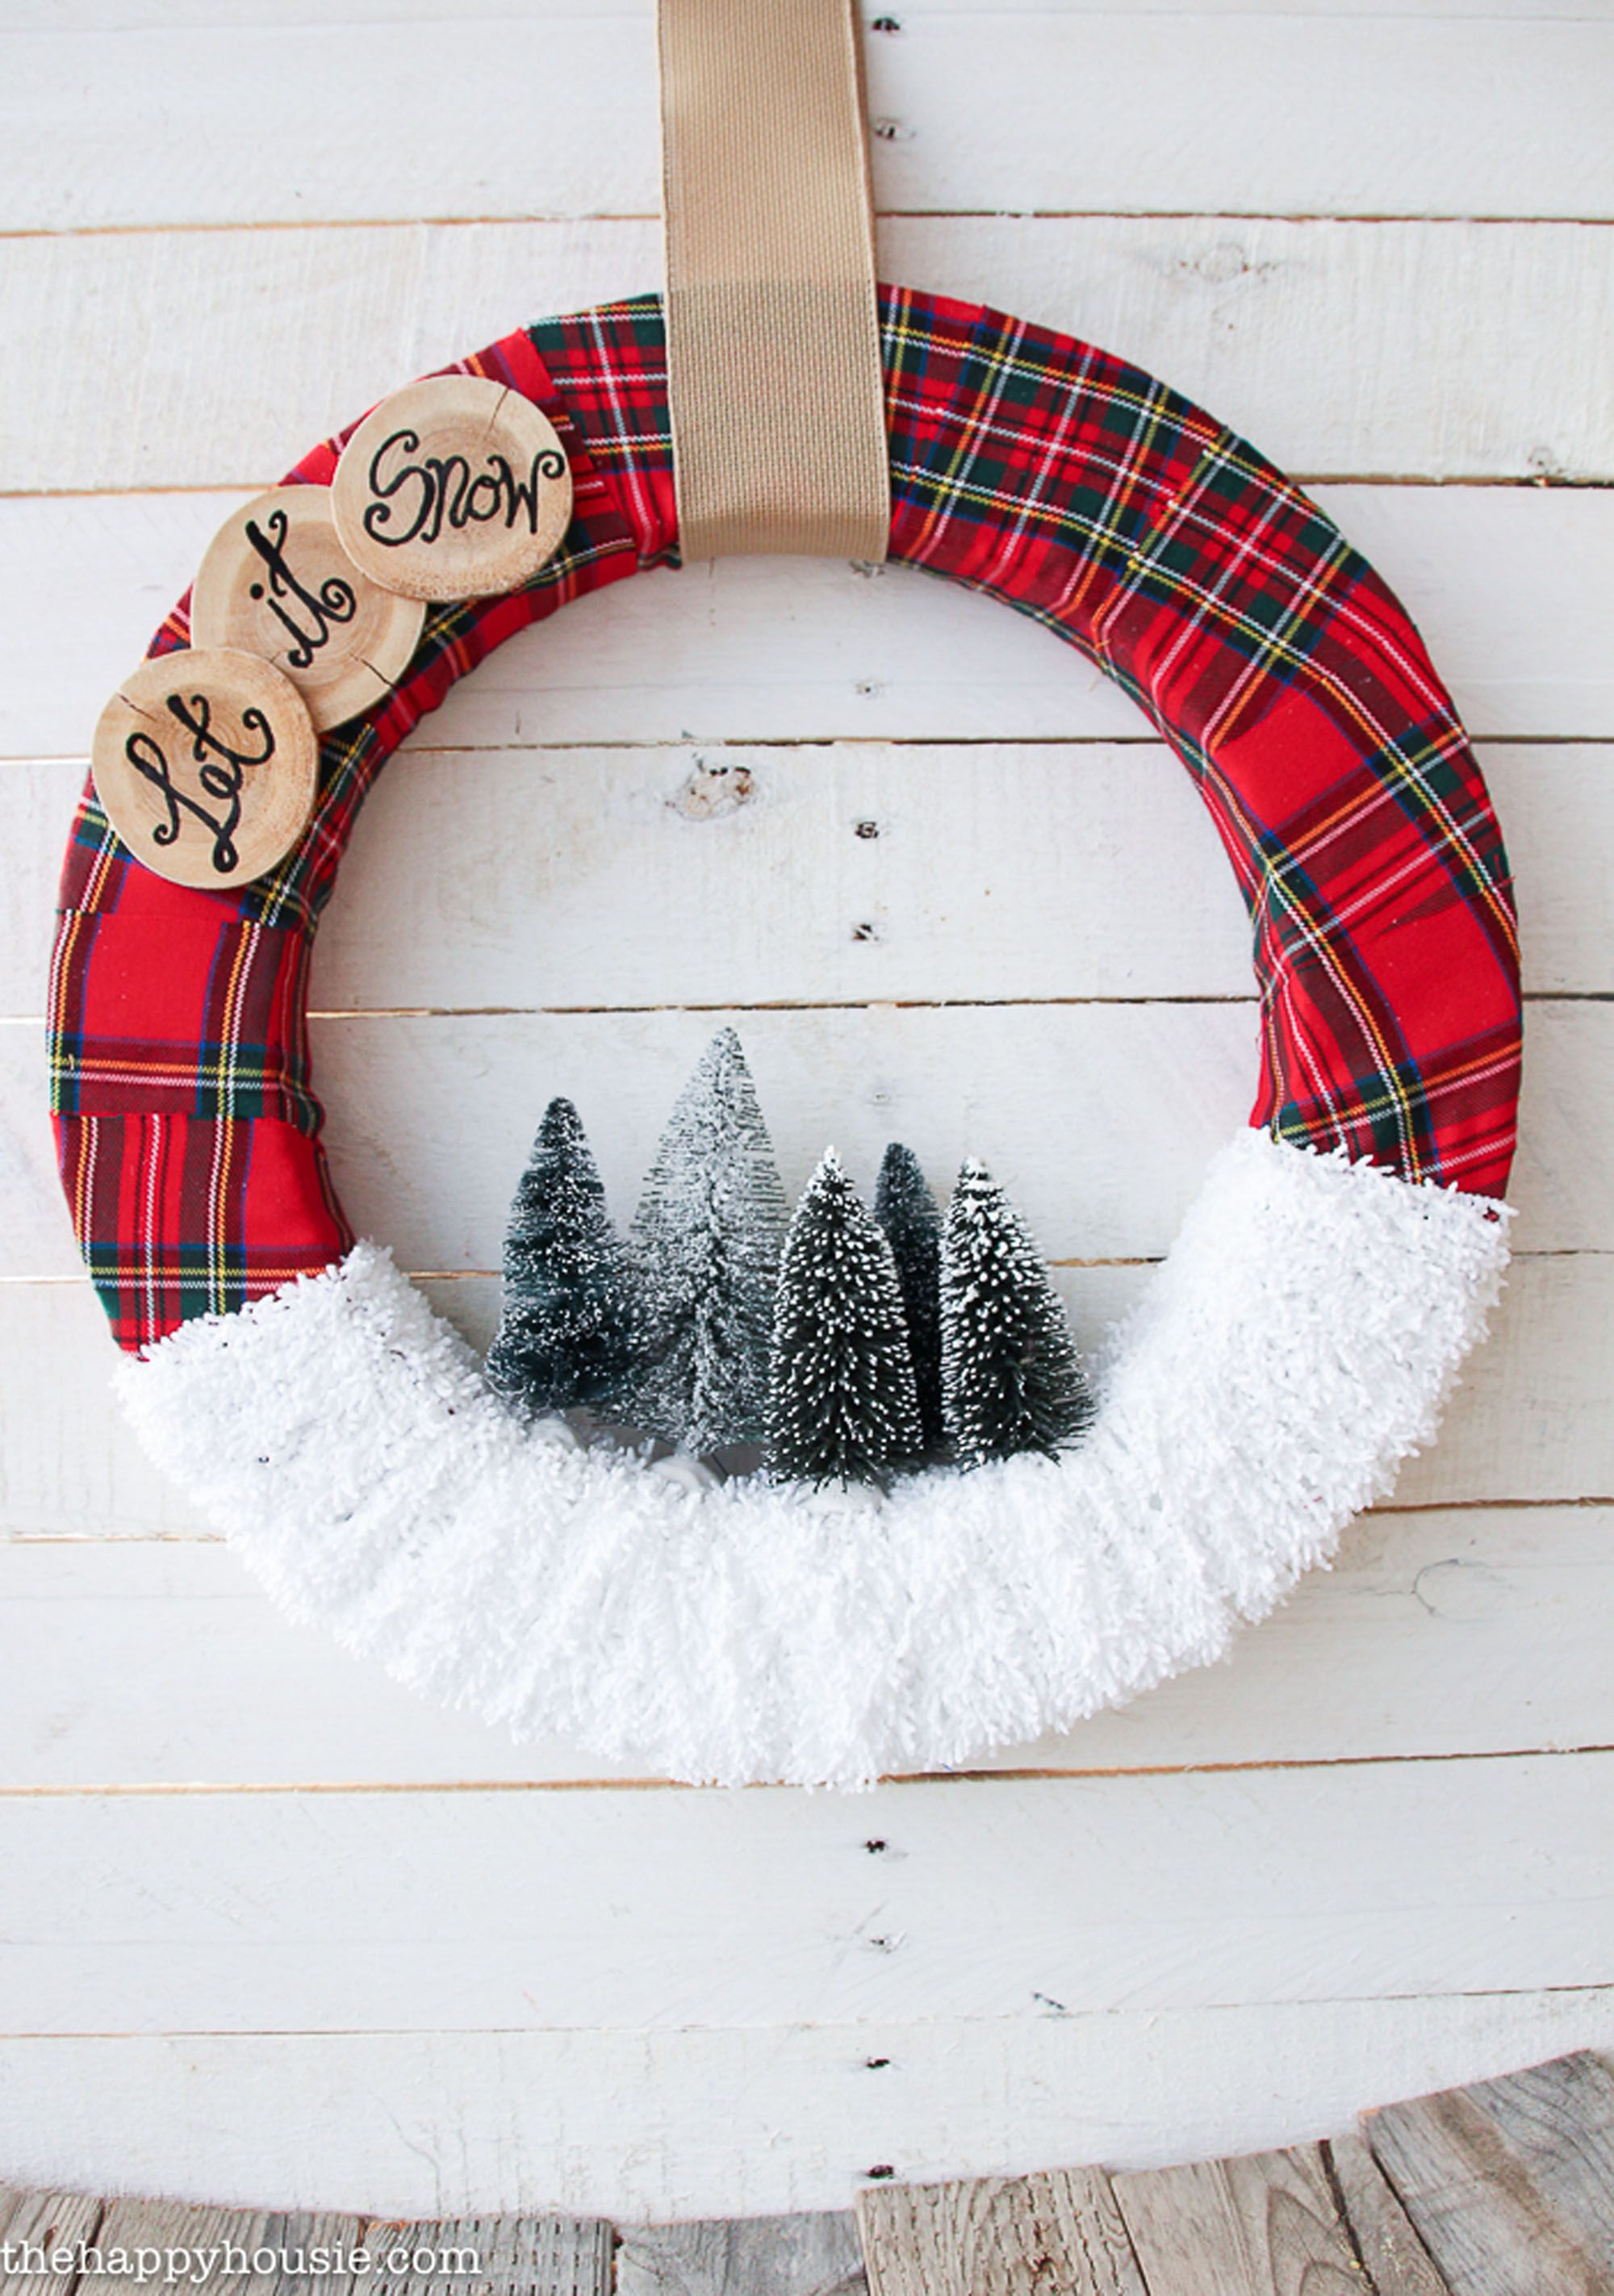 65 DIY Christmas Wreath Ideas - How To Make Holiday Wreaths Crafts